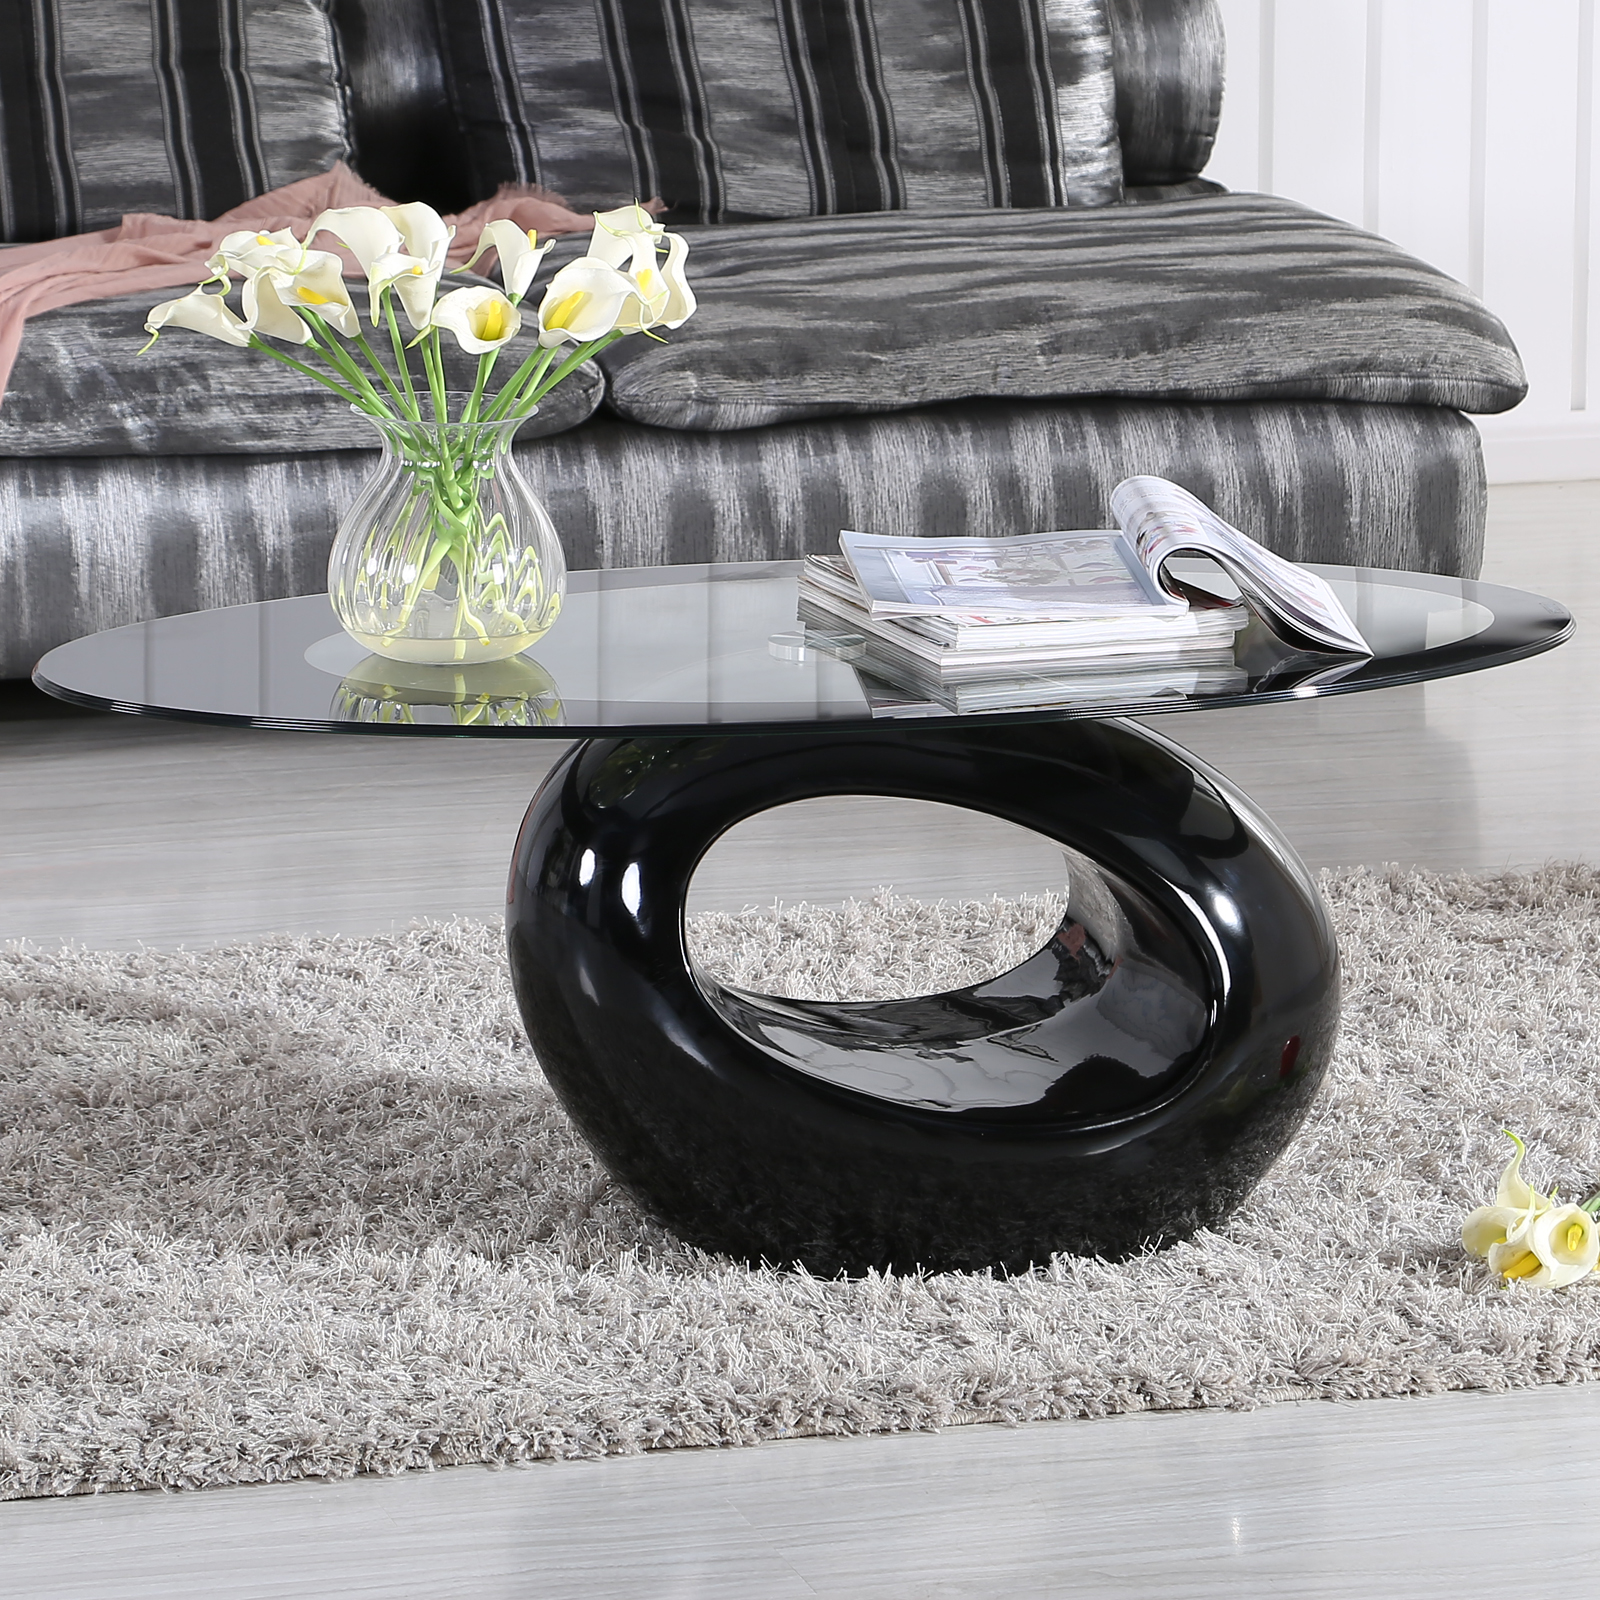 fabulous 1312 tea table living room furniture tempered glass | Oval High Gloss Black Glass Coffee Table Contemporary ...